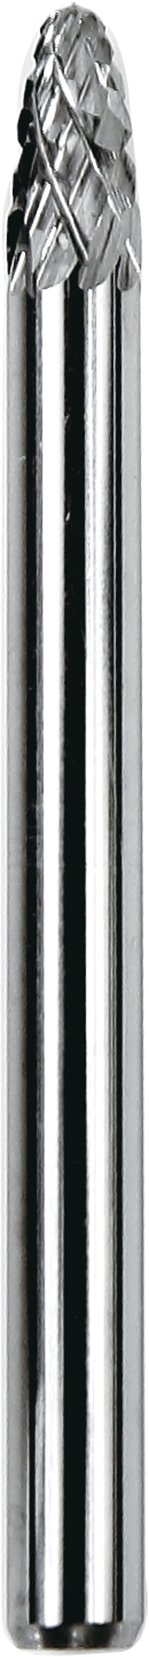 Dedeco 12604 Carbide Bur, Double-Cut, Tree-Radius